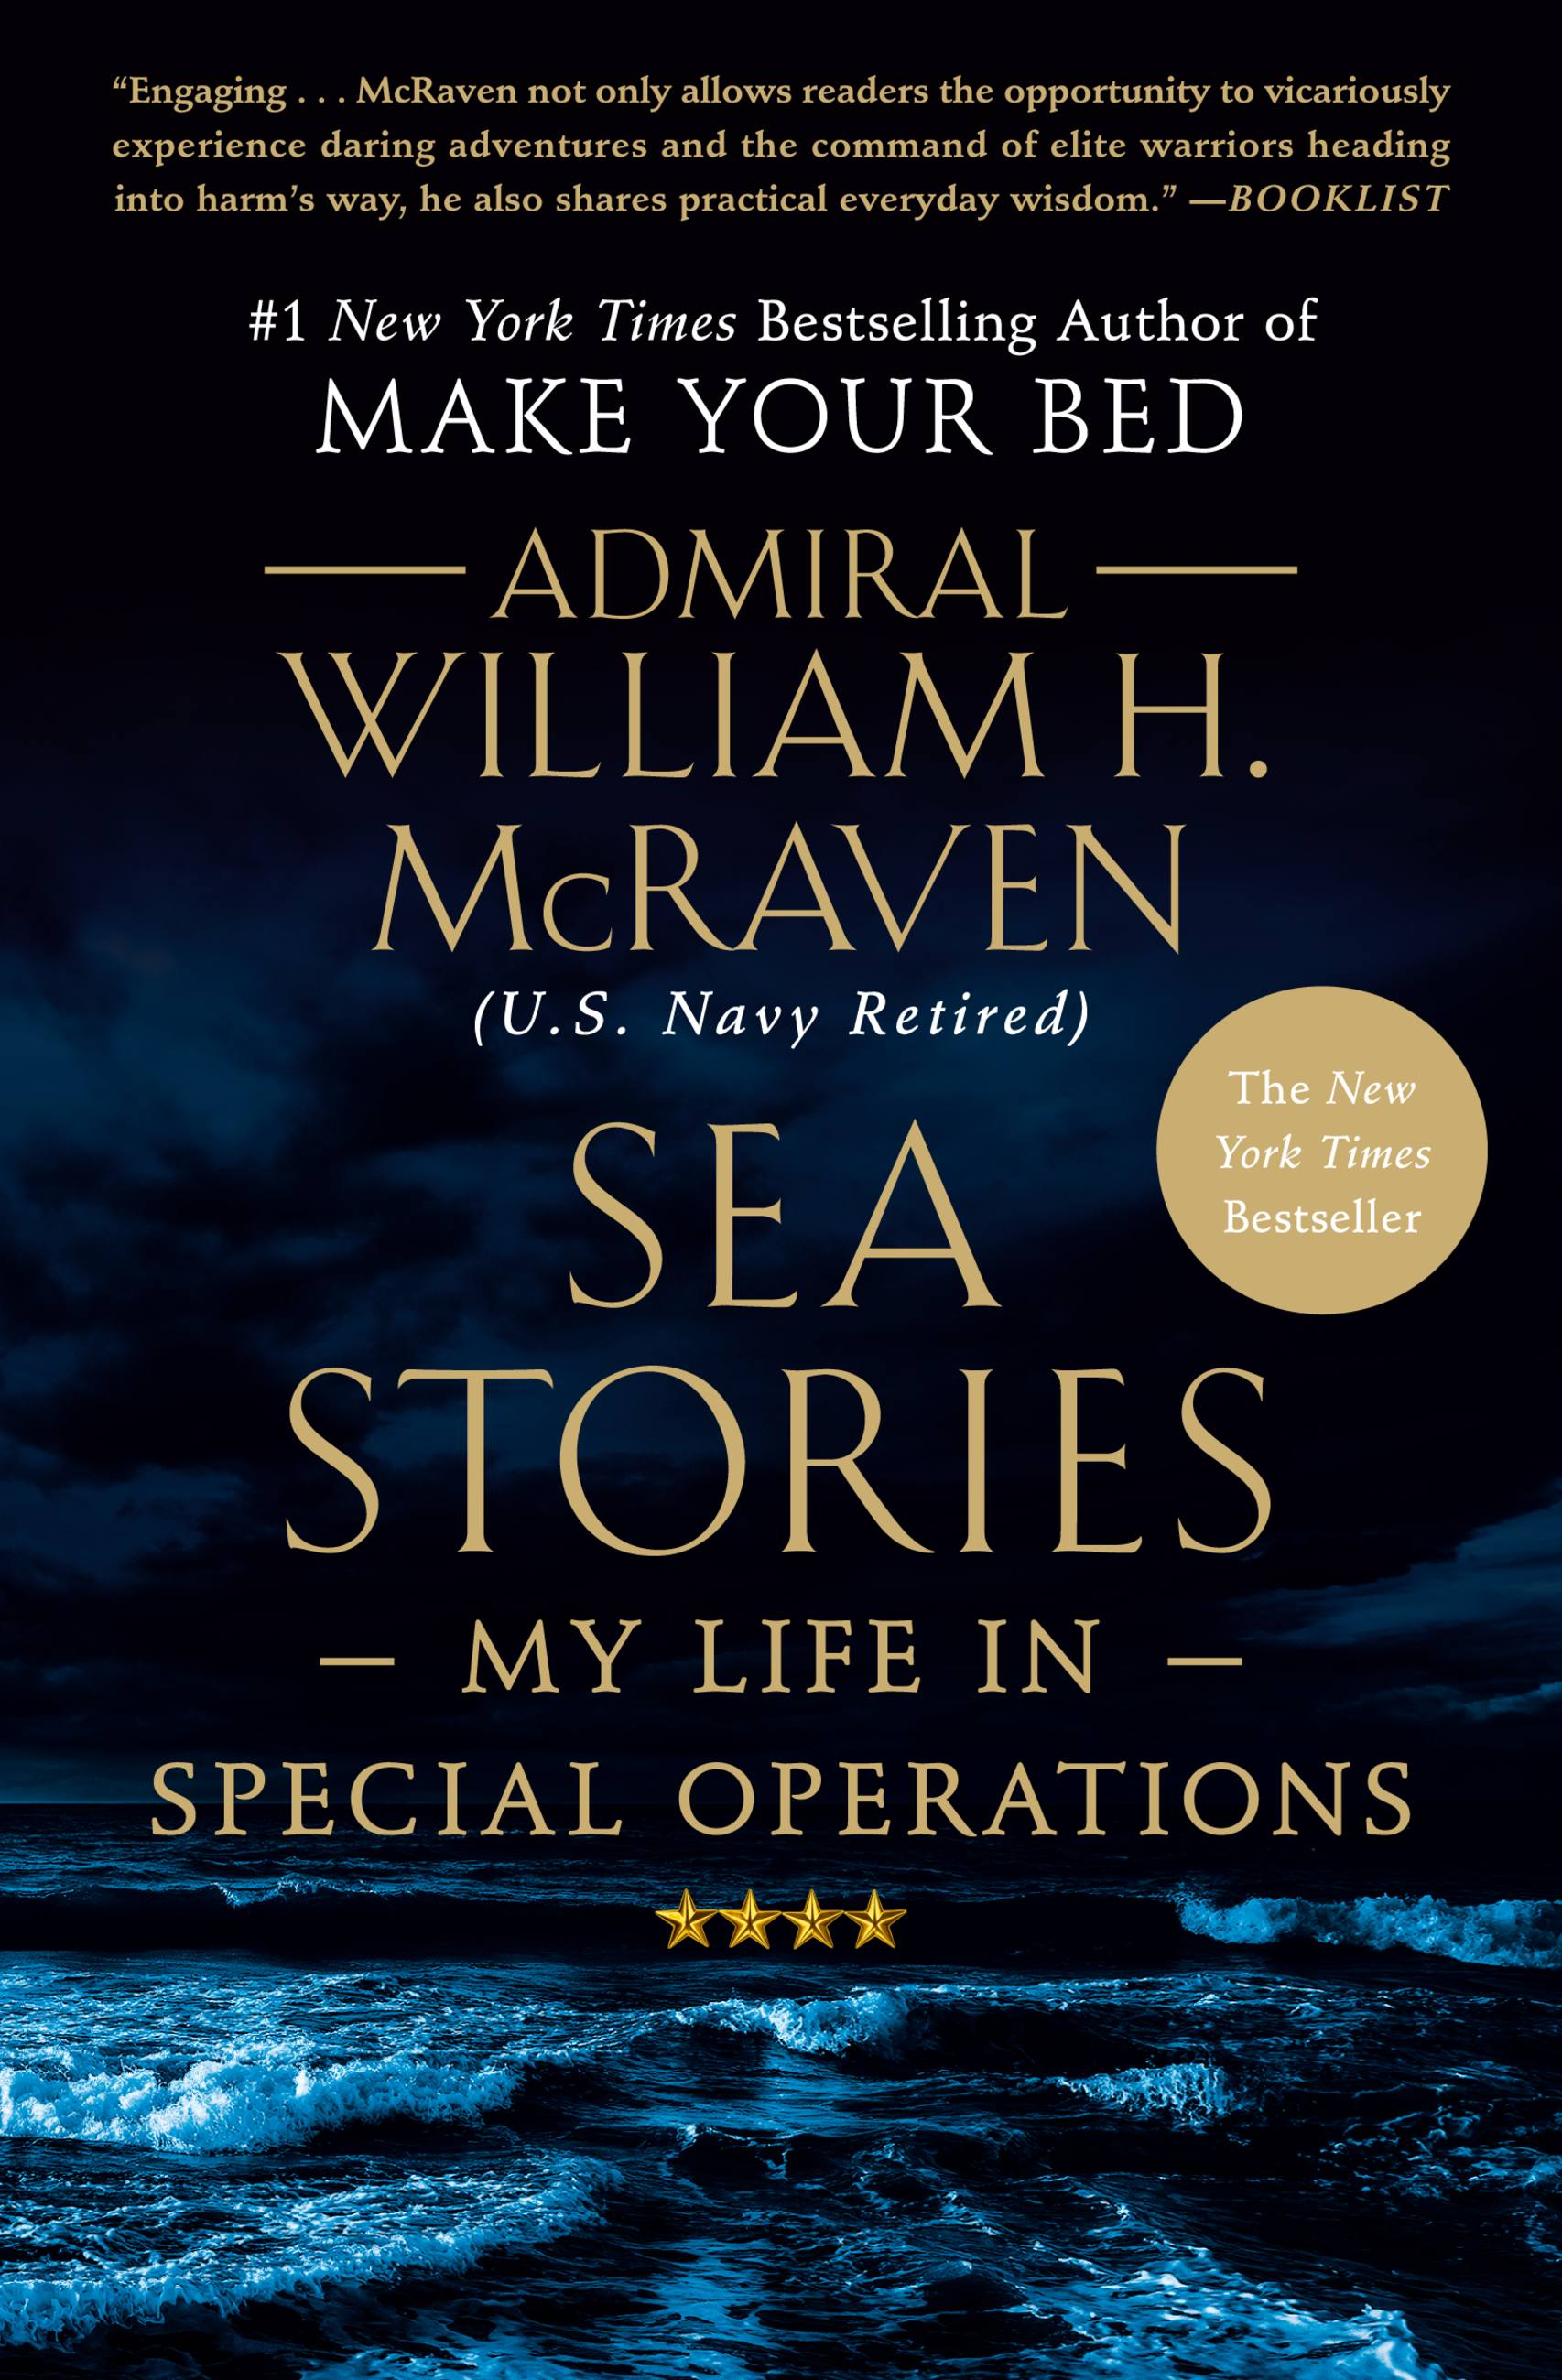 Sea Stories My Life in Special Operations